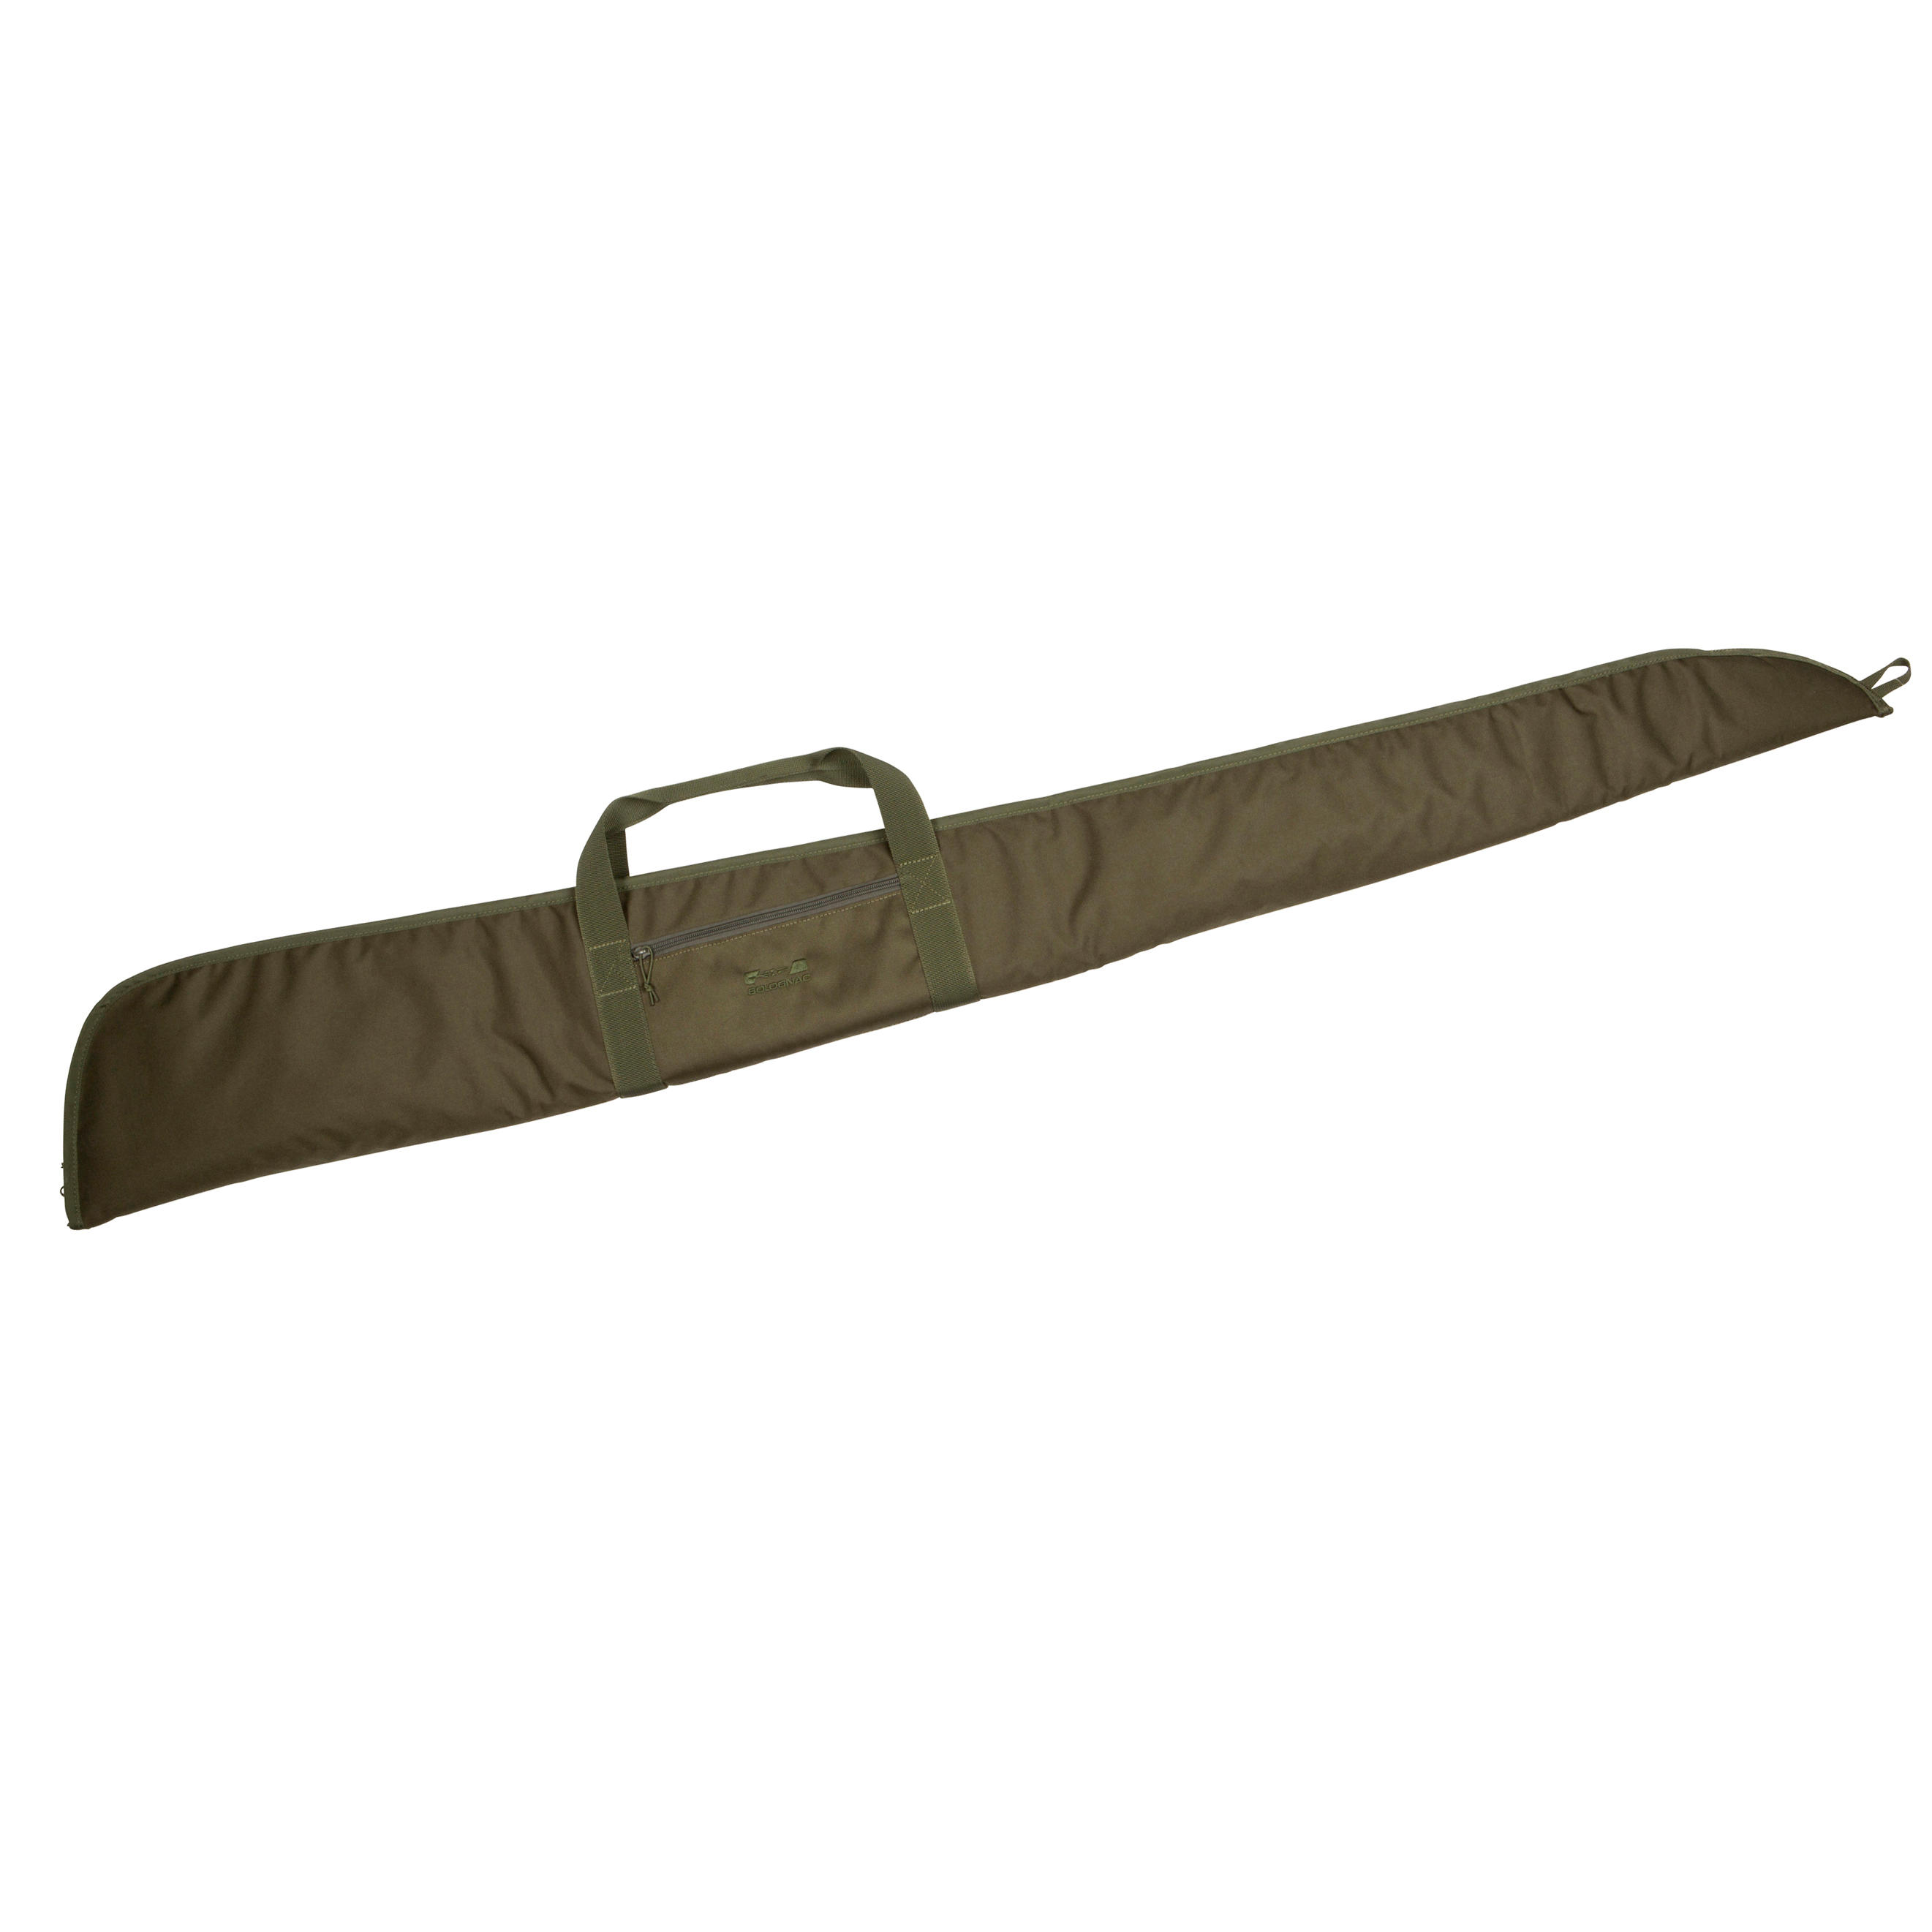 Hunting Rifle Bag 150 cm - Green